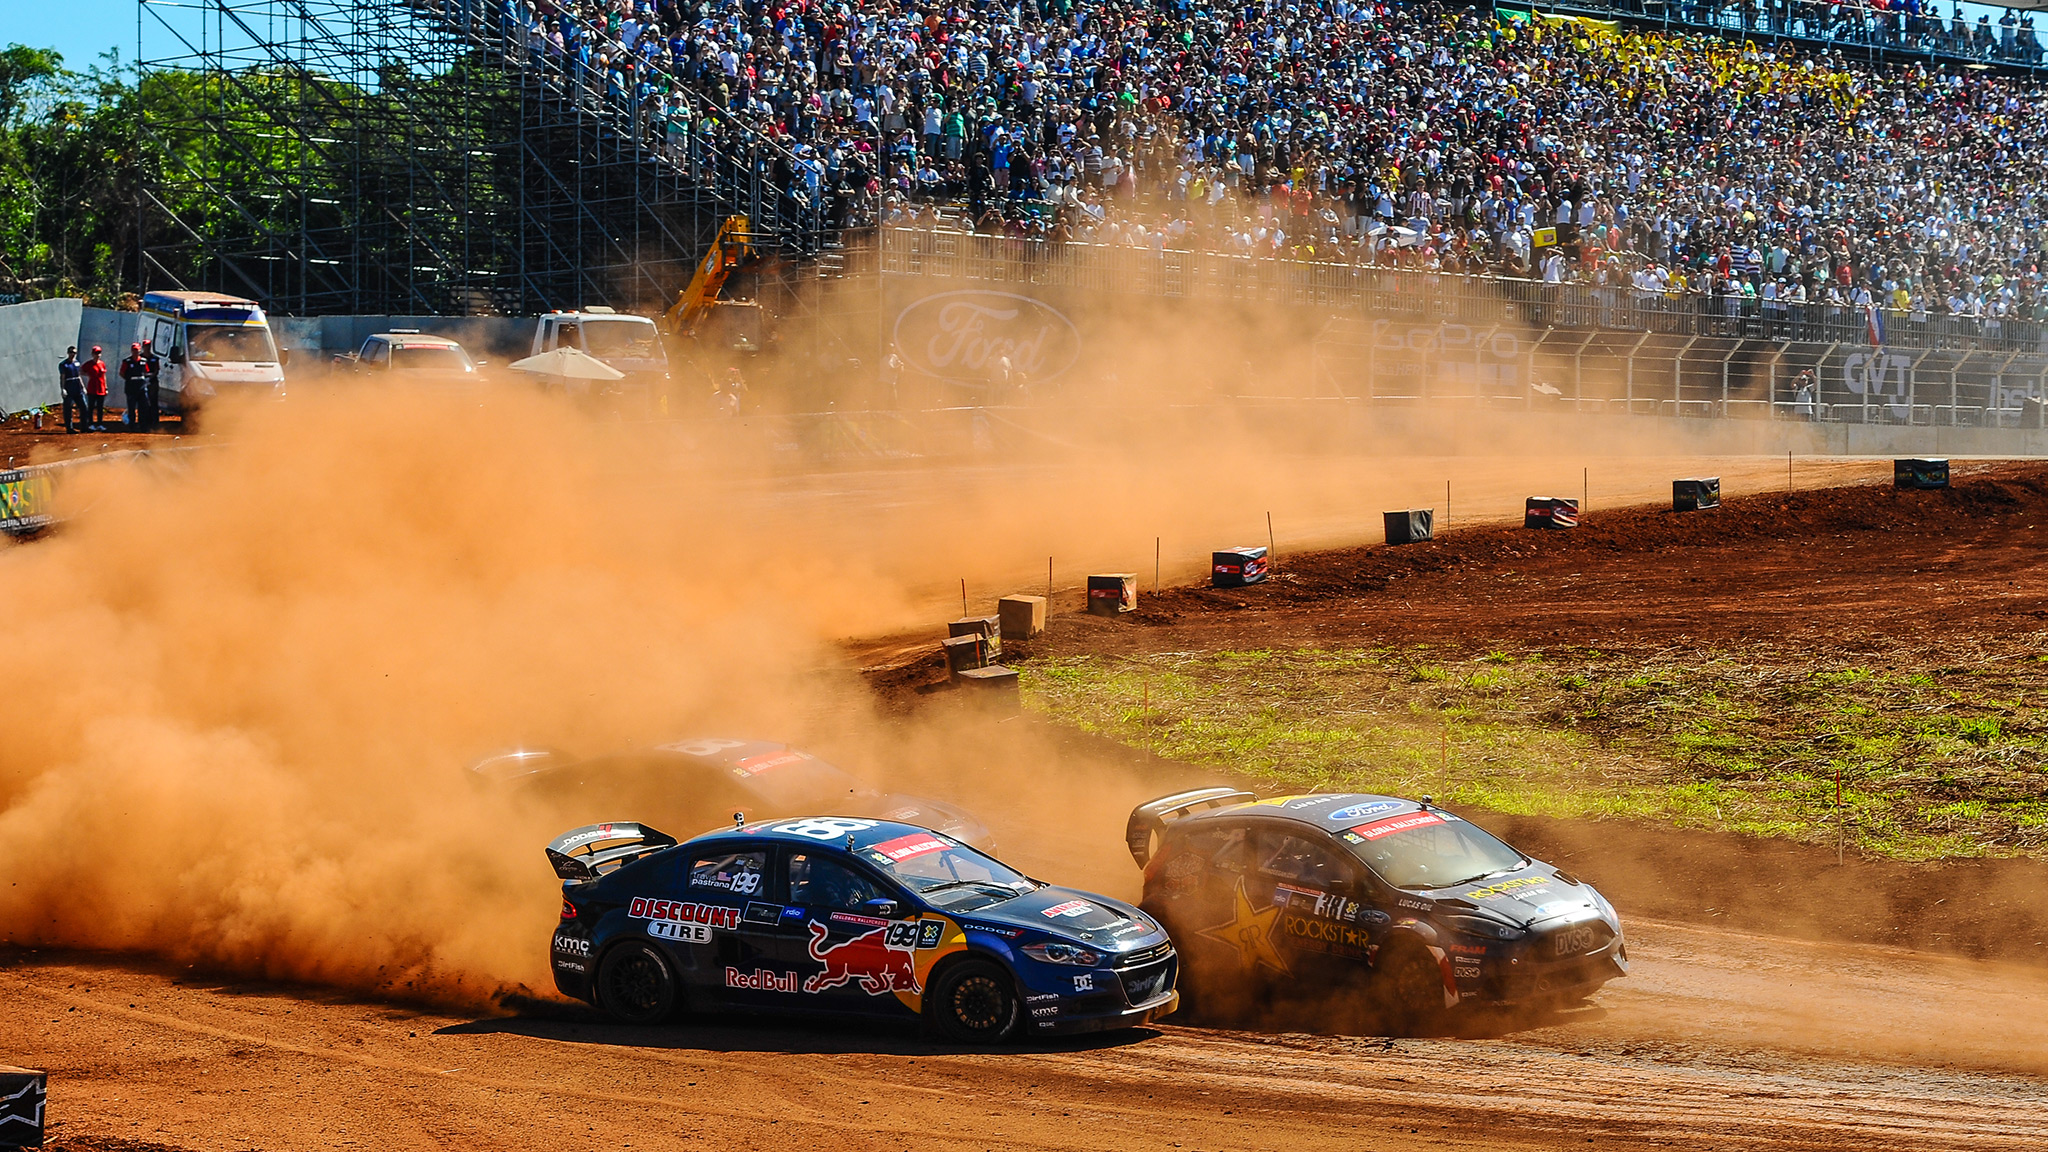 Deegan and Pastrana